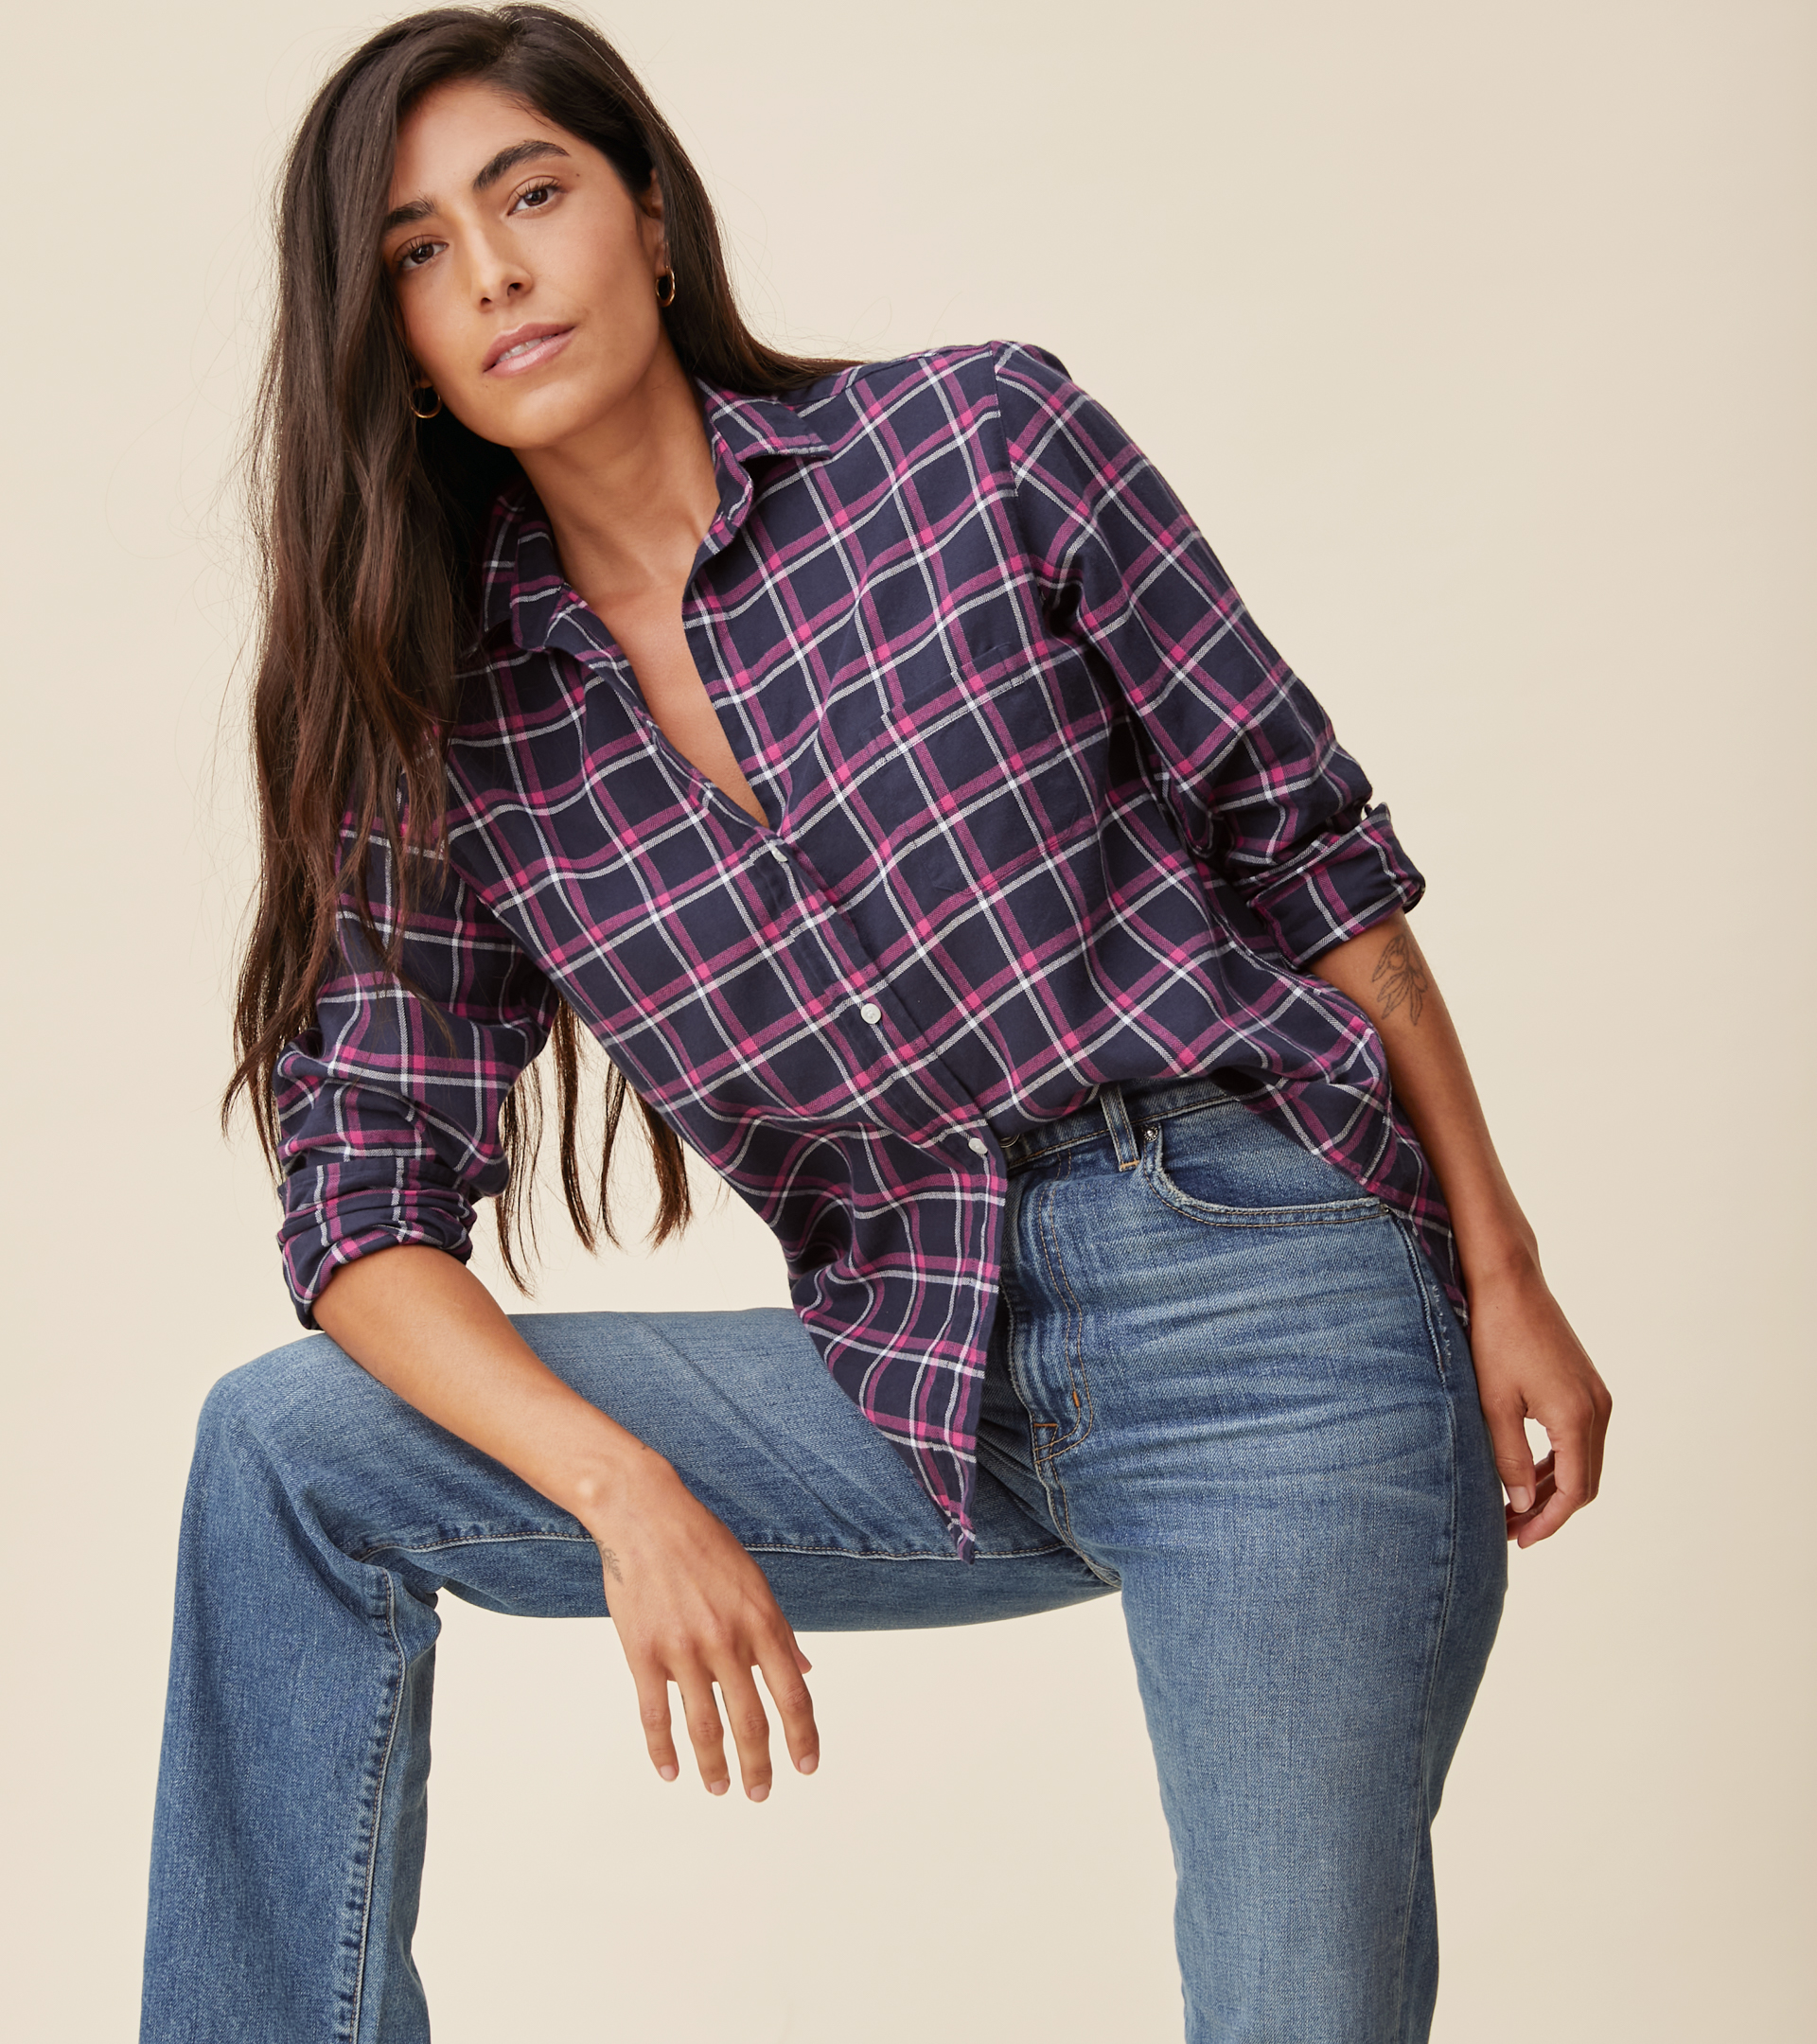 Image of The Hero Button-Up Shirt Navy, Pink, and White Plaid, Feathered Flannel